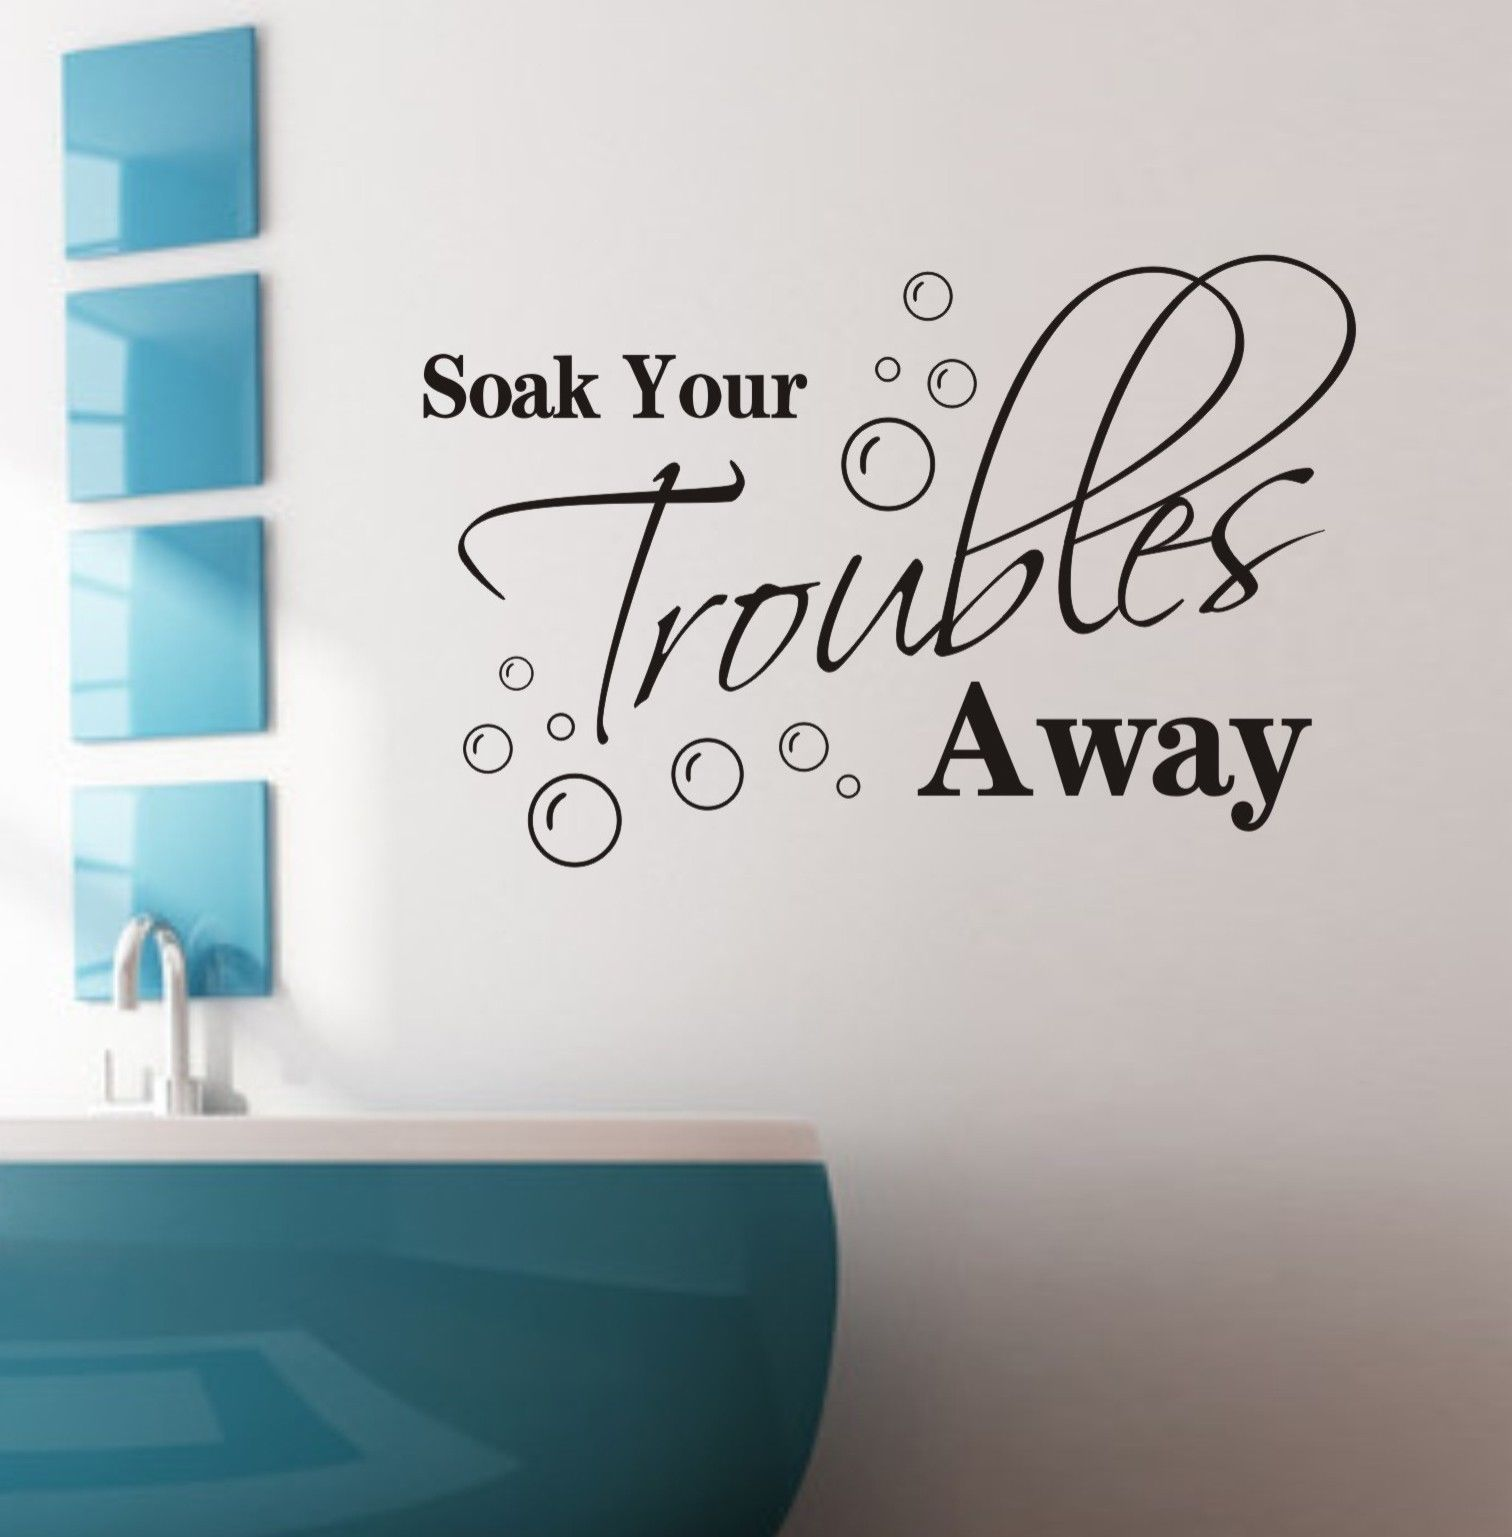 Soak all your troubles away Wall Quote Bathroom Wall Art Sticker